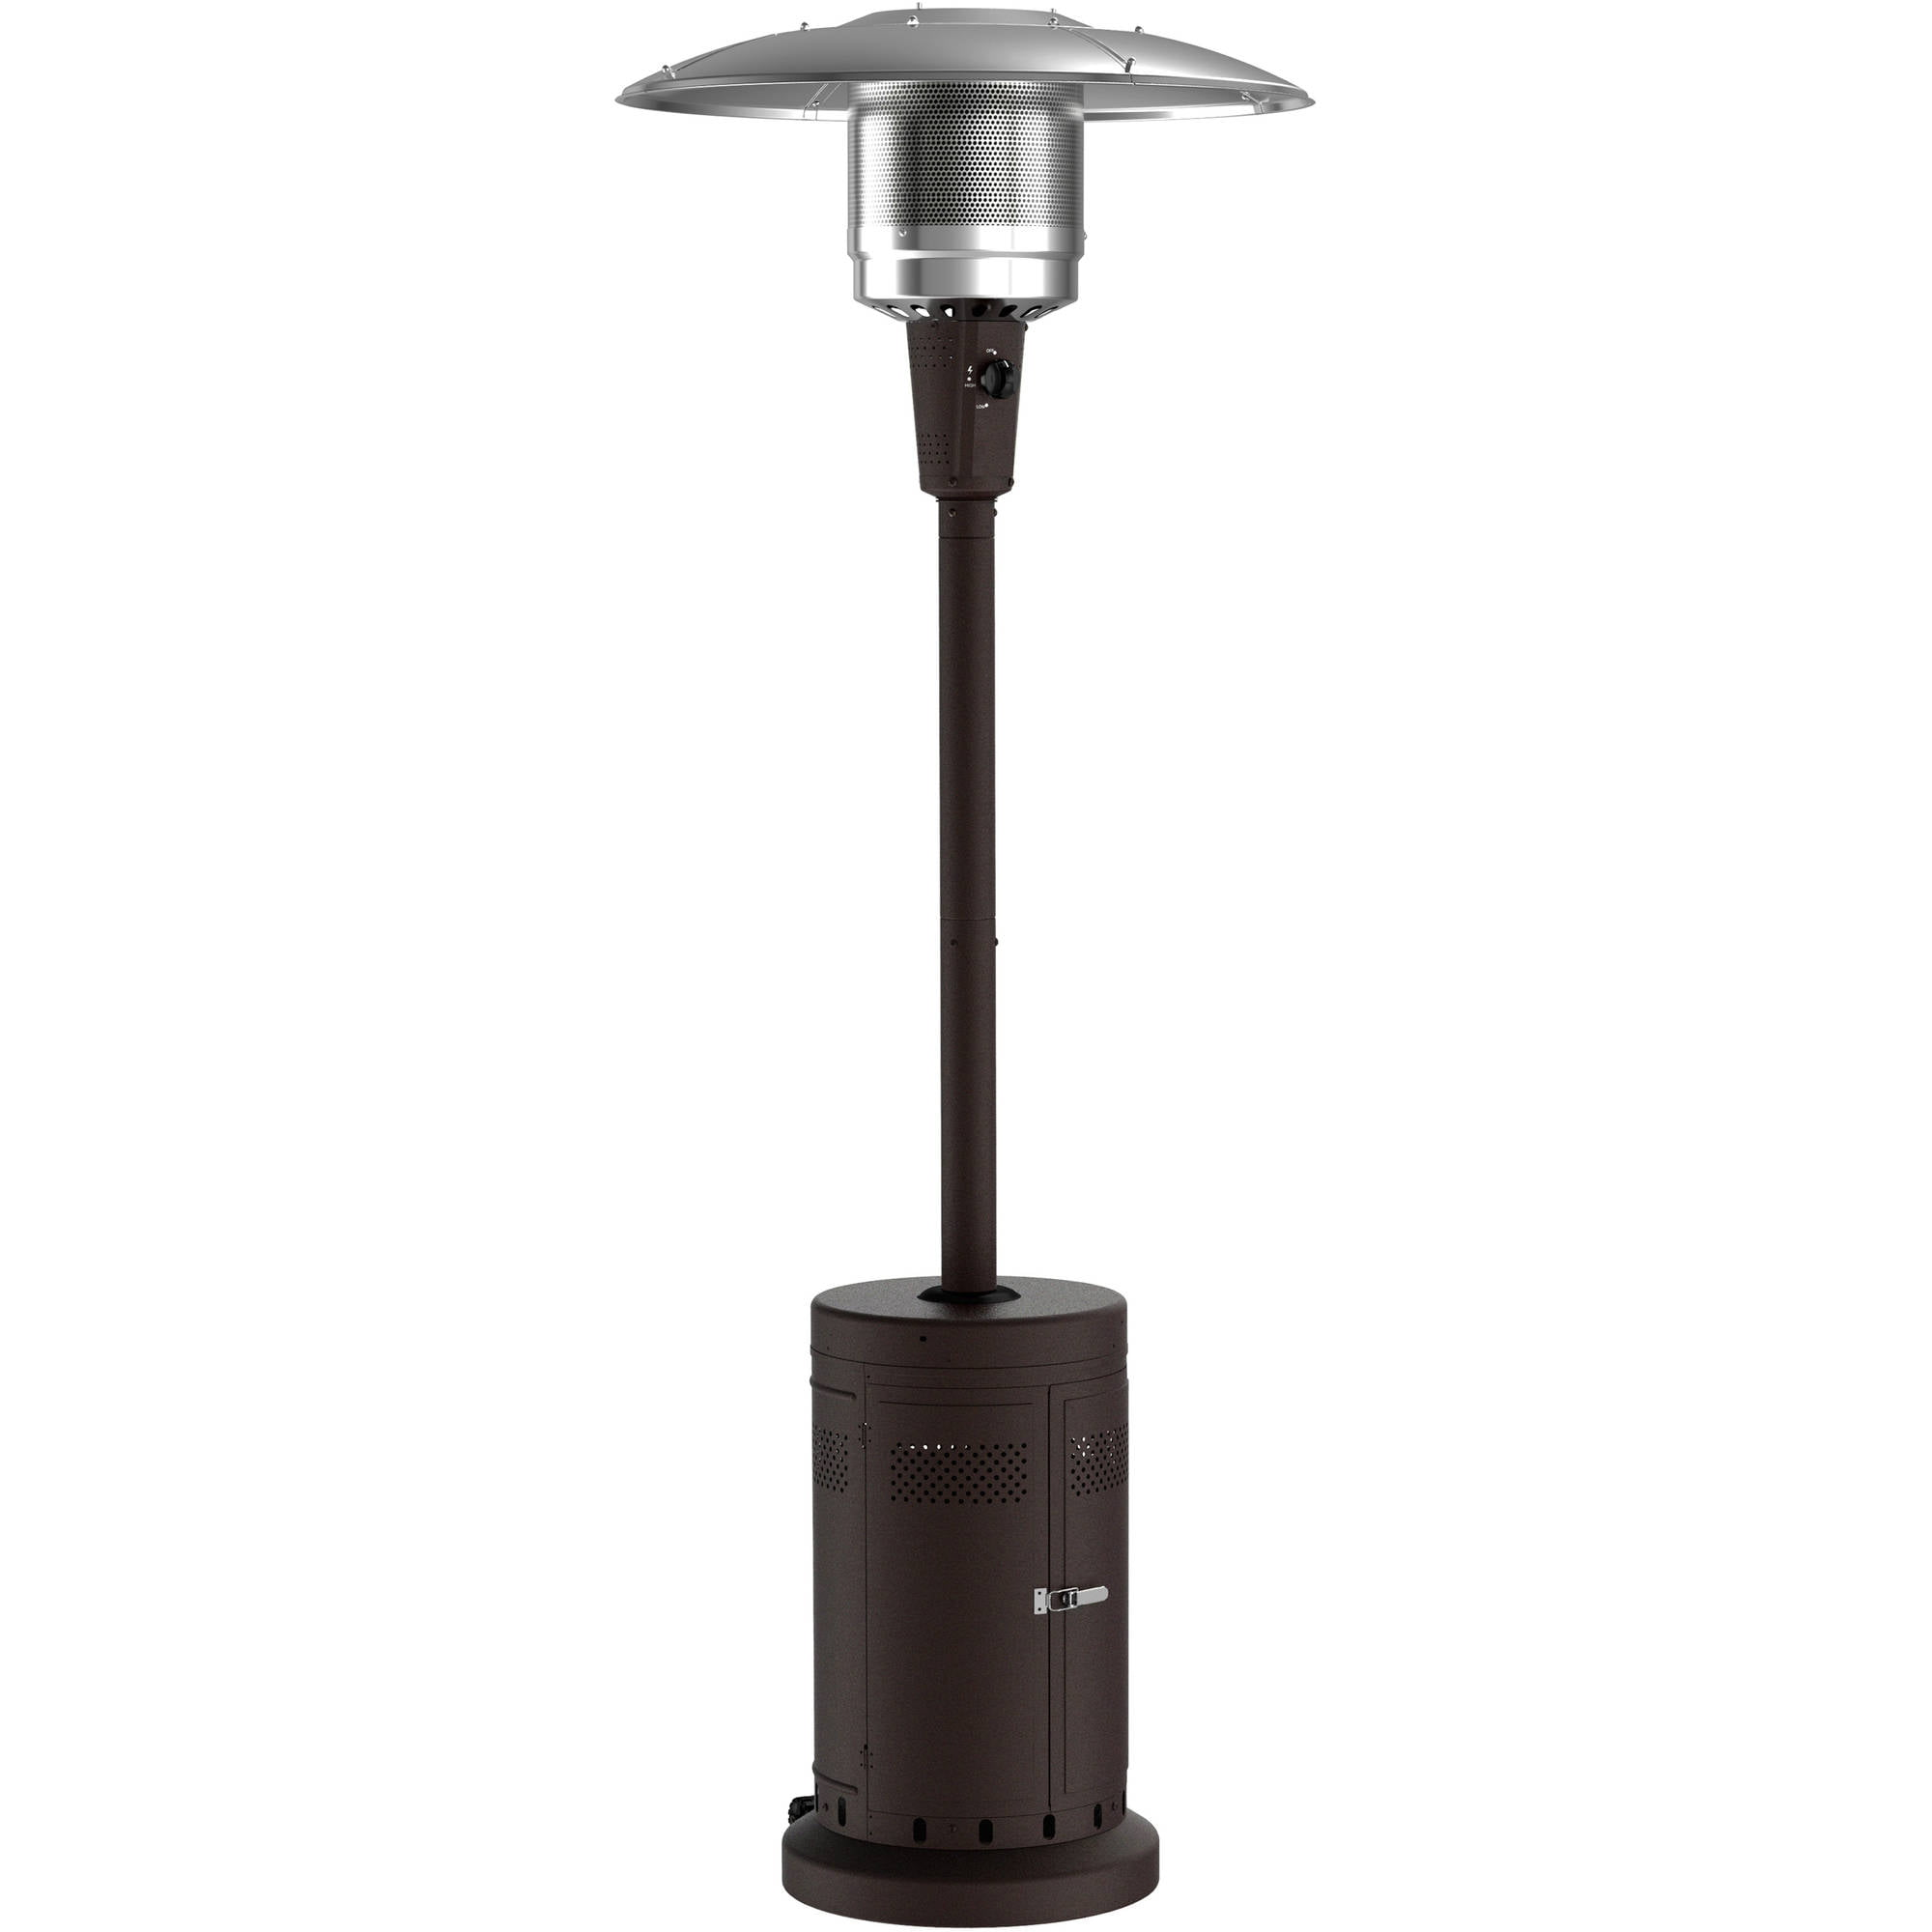 Propane Patio Heater Large Powder Coat Brown Outdoor Backyard Garden Deck  New